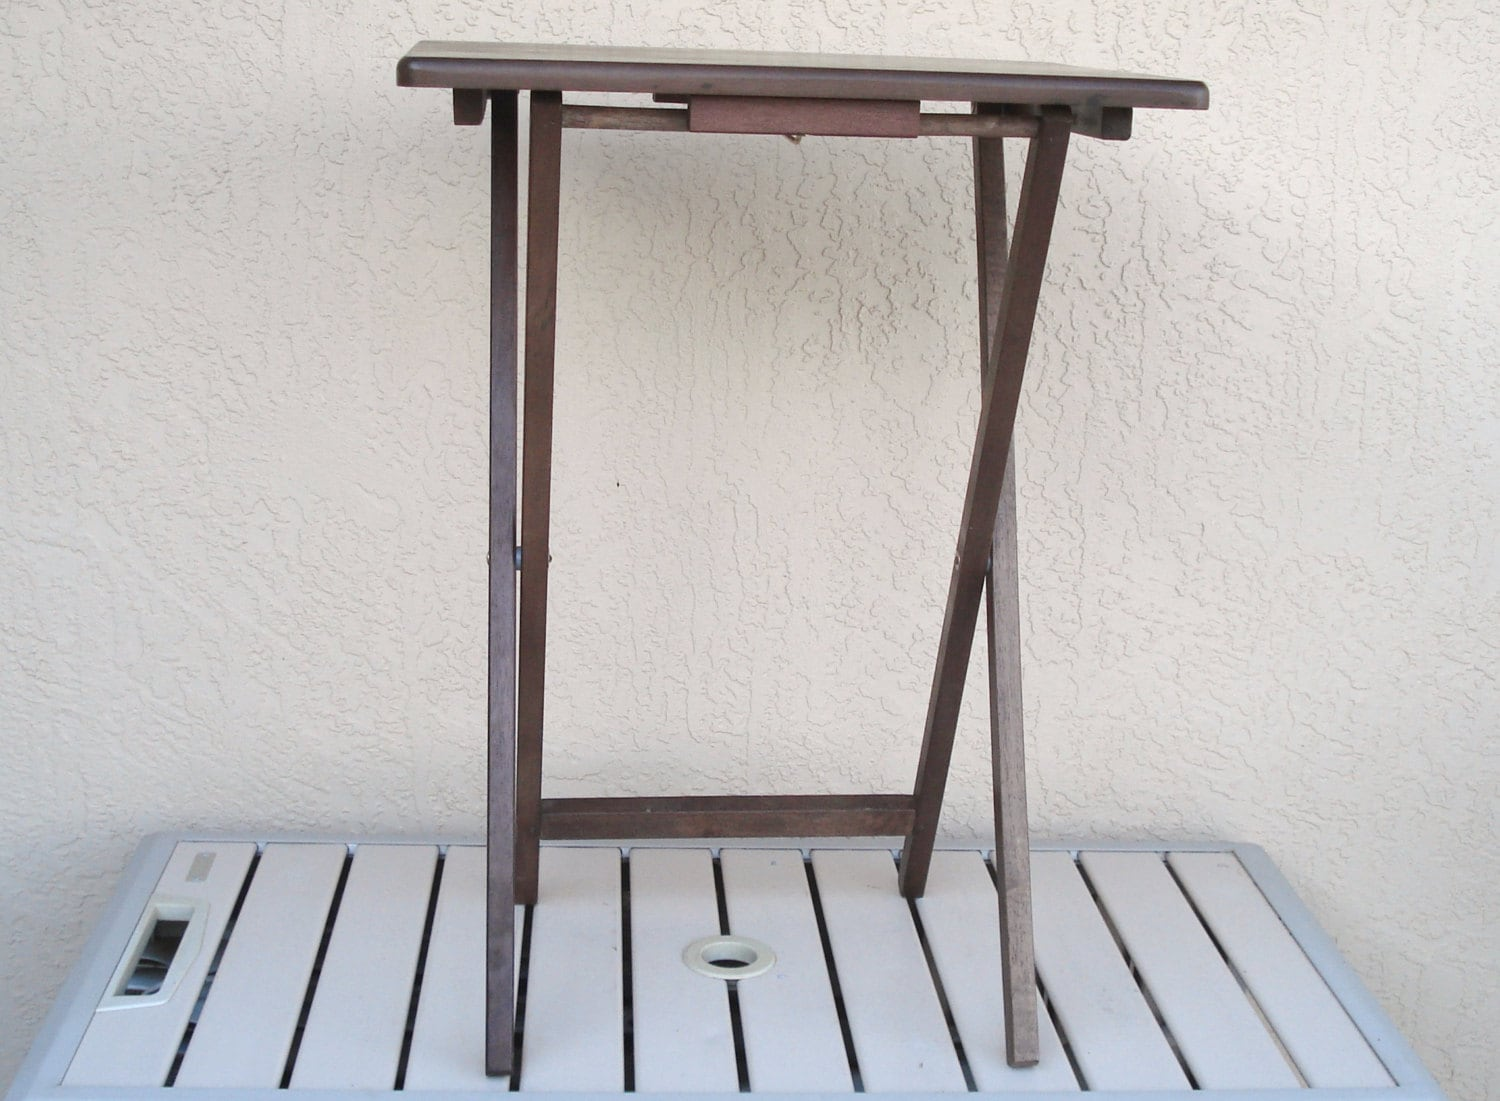 Superb img of Vintage Wooden Wood Folding Bed Side Table by npebaysale on Etsy with #526579 color and 1500x1101 pixels